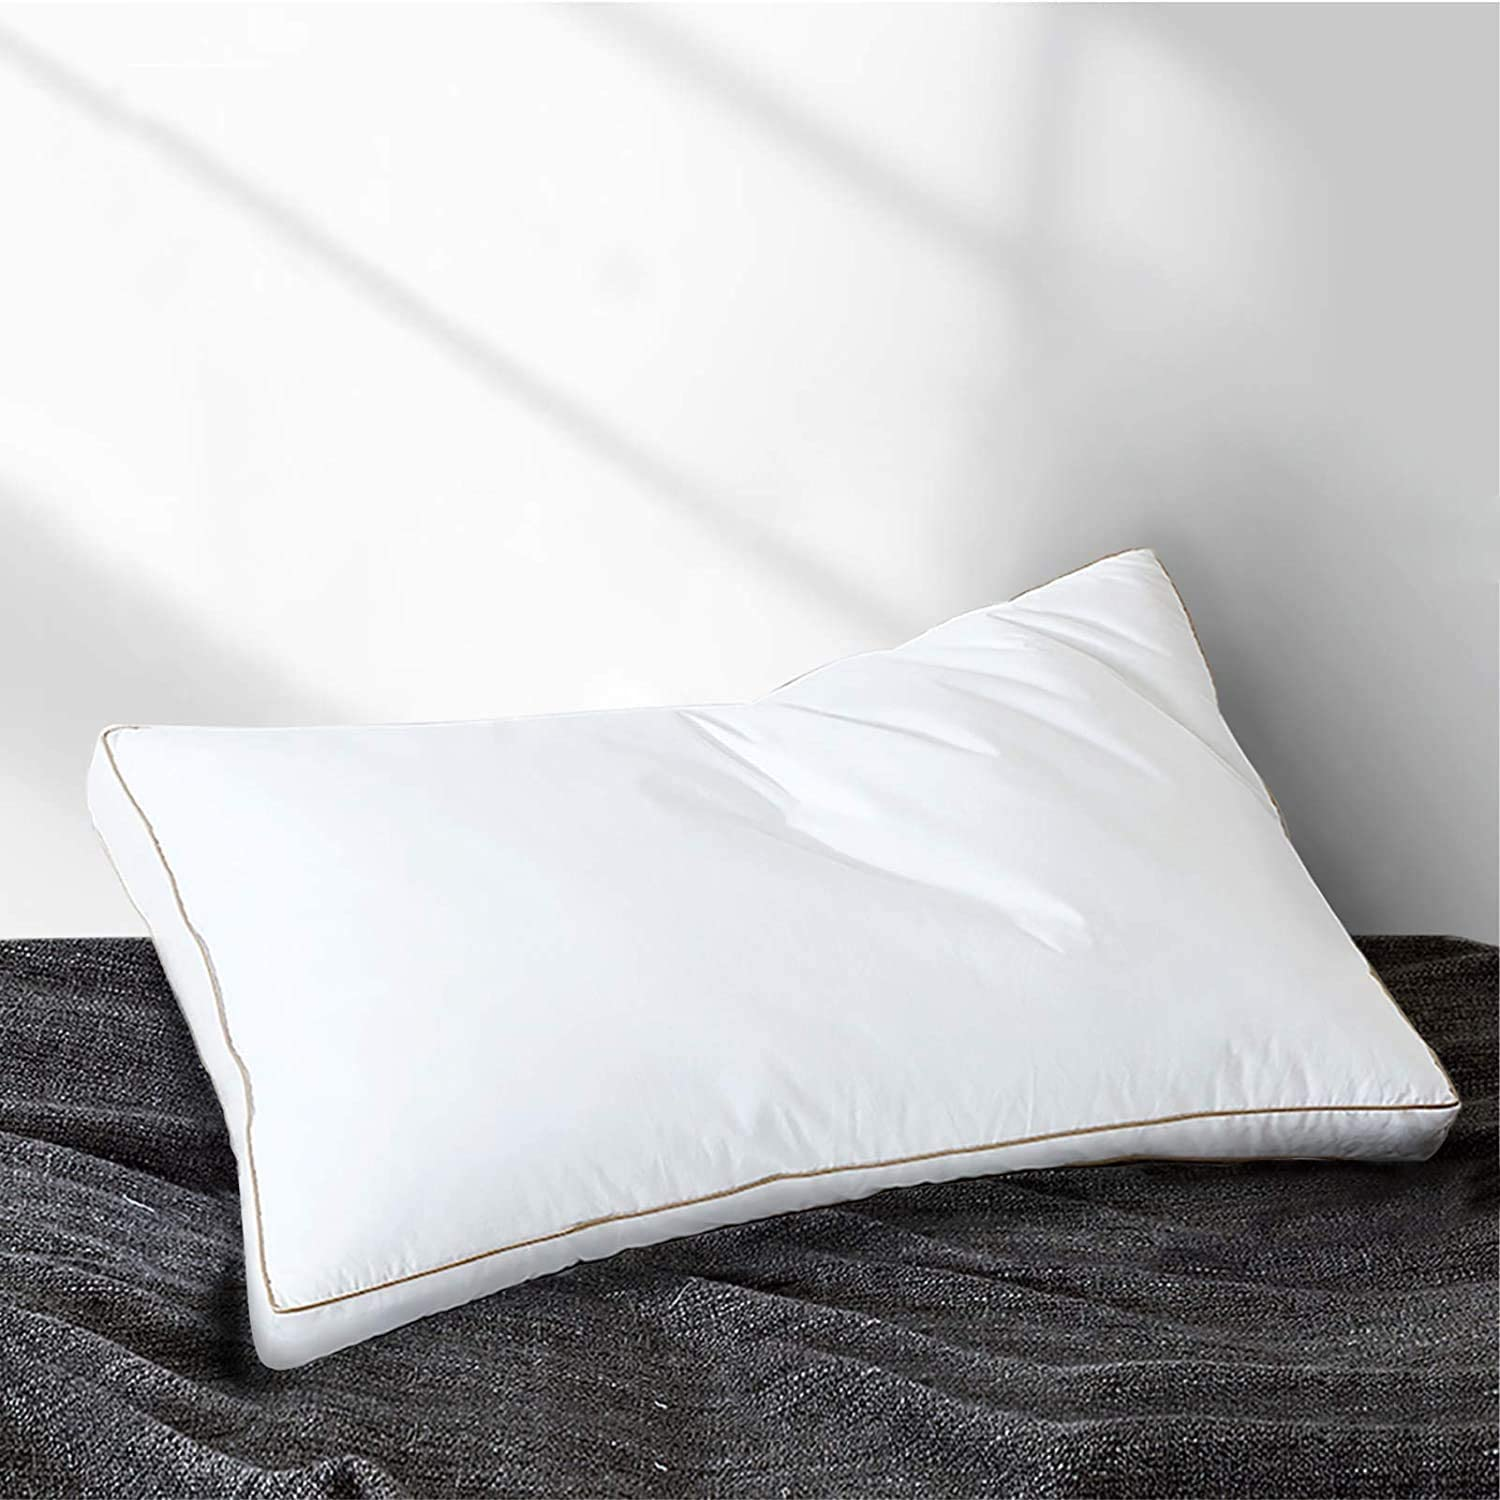 Yalamila Natural Goose Down Feather Bed Pillows for Sleeping (1-Pack)- 100% Cotton Fabric Cover Skin-Friendly - Luxury Hotel Soft Gusseted Pillows - Side Back Sleepers- Queen (20x30 inch)